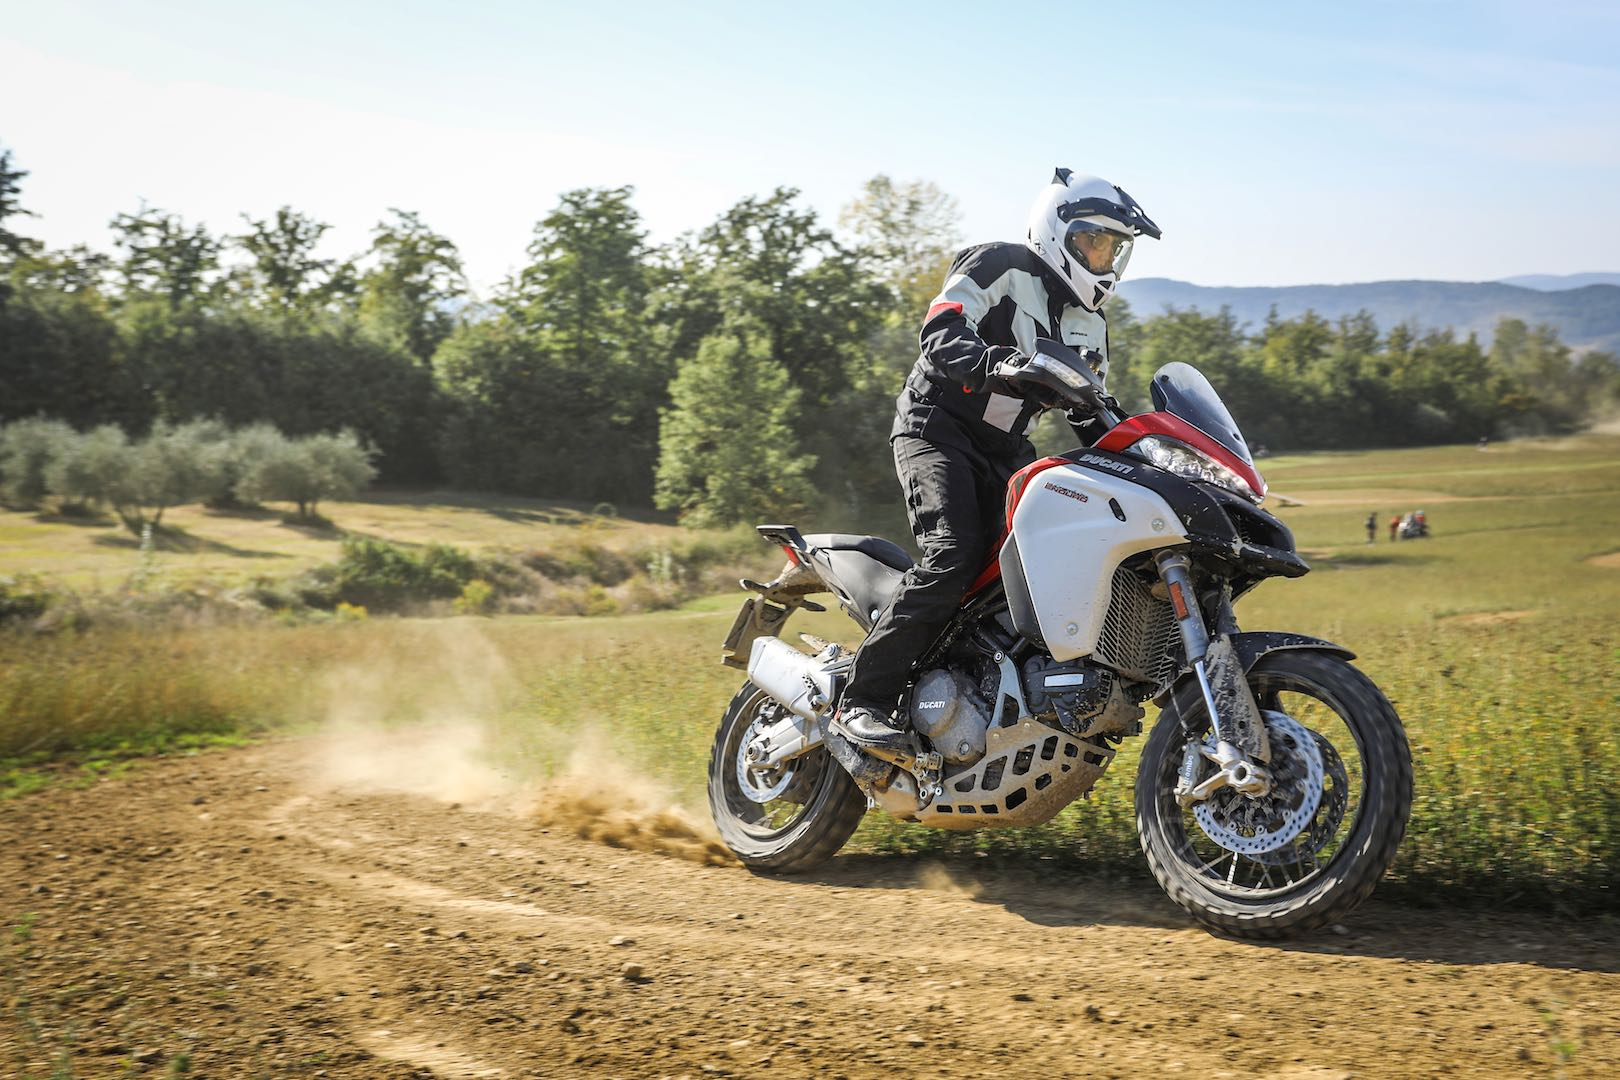 2019 Ducati Multistrada 1260 Enduro testing off road